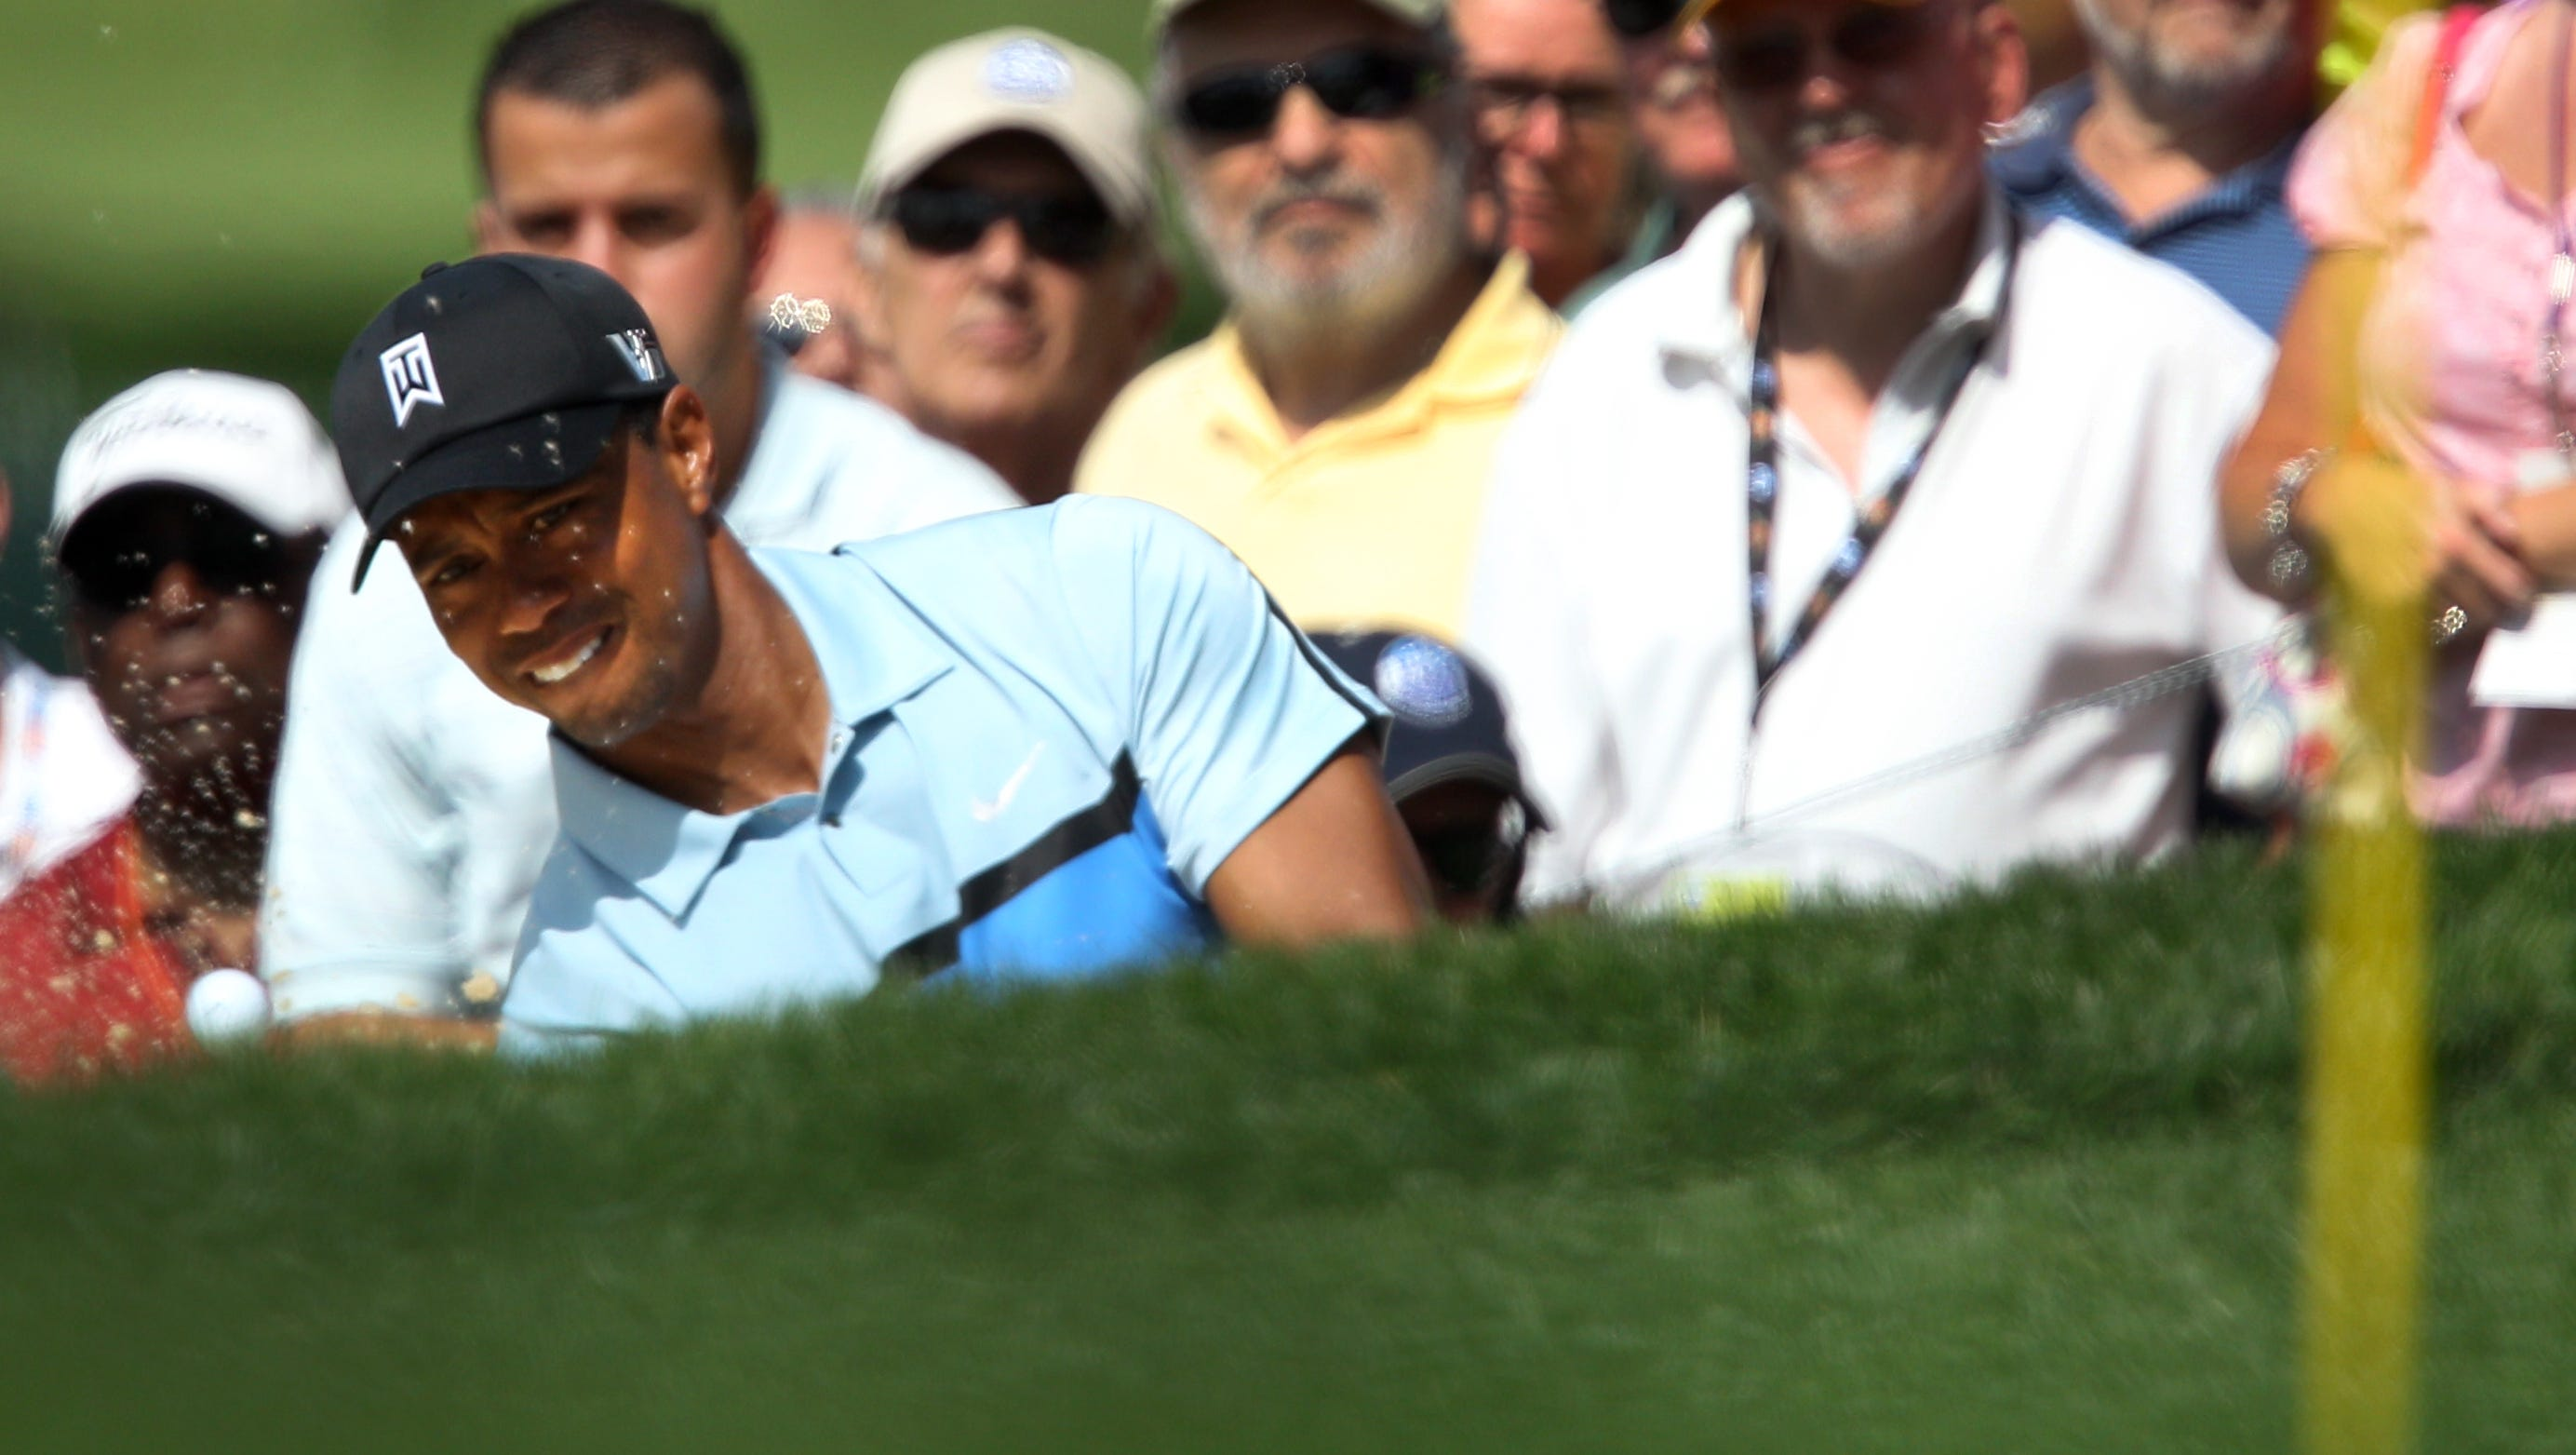 Tiger Woods watches as his ball drops onto the 18 green during the first round of the 95th PGA Championship at Oak Hill in Pittsford, NY August 8, 2013.